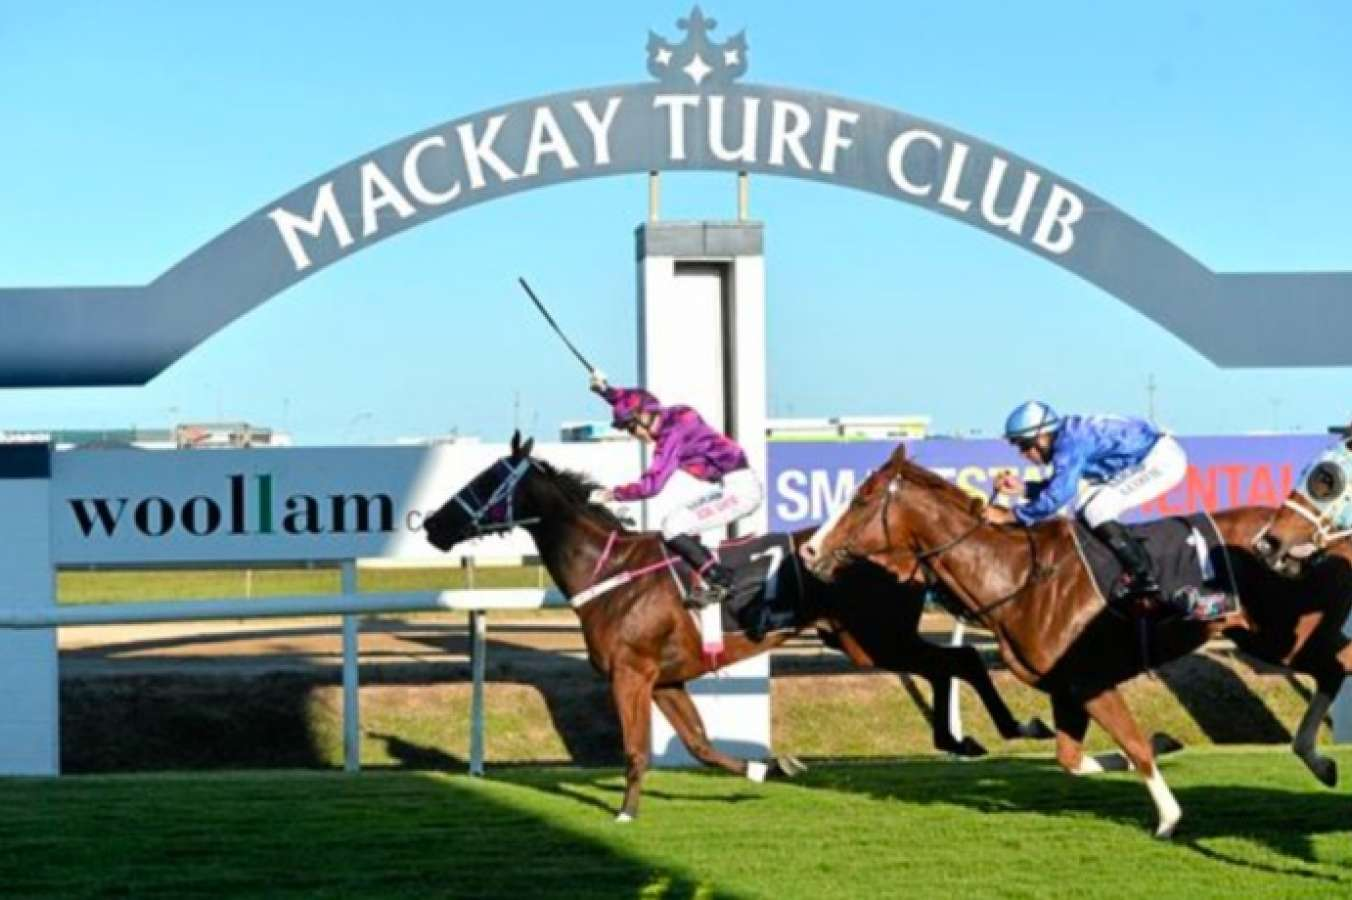 Mackay hosts thoroughbred racing on Tuesday